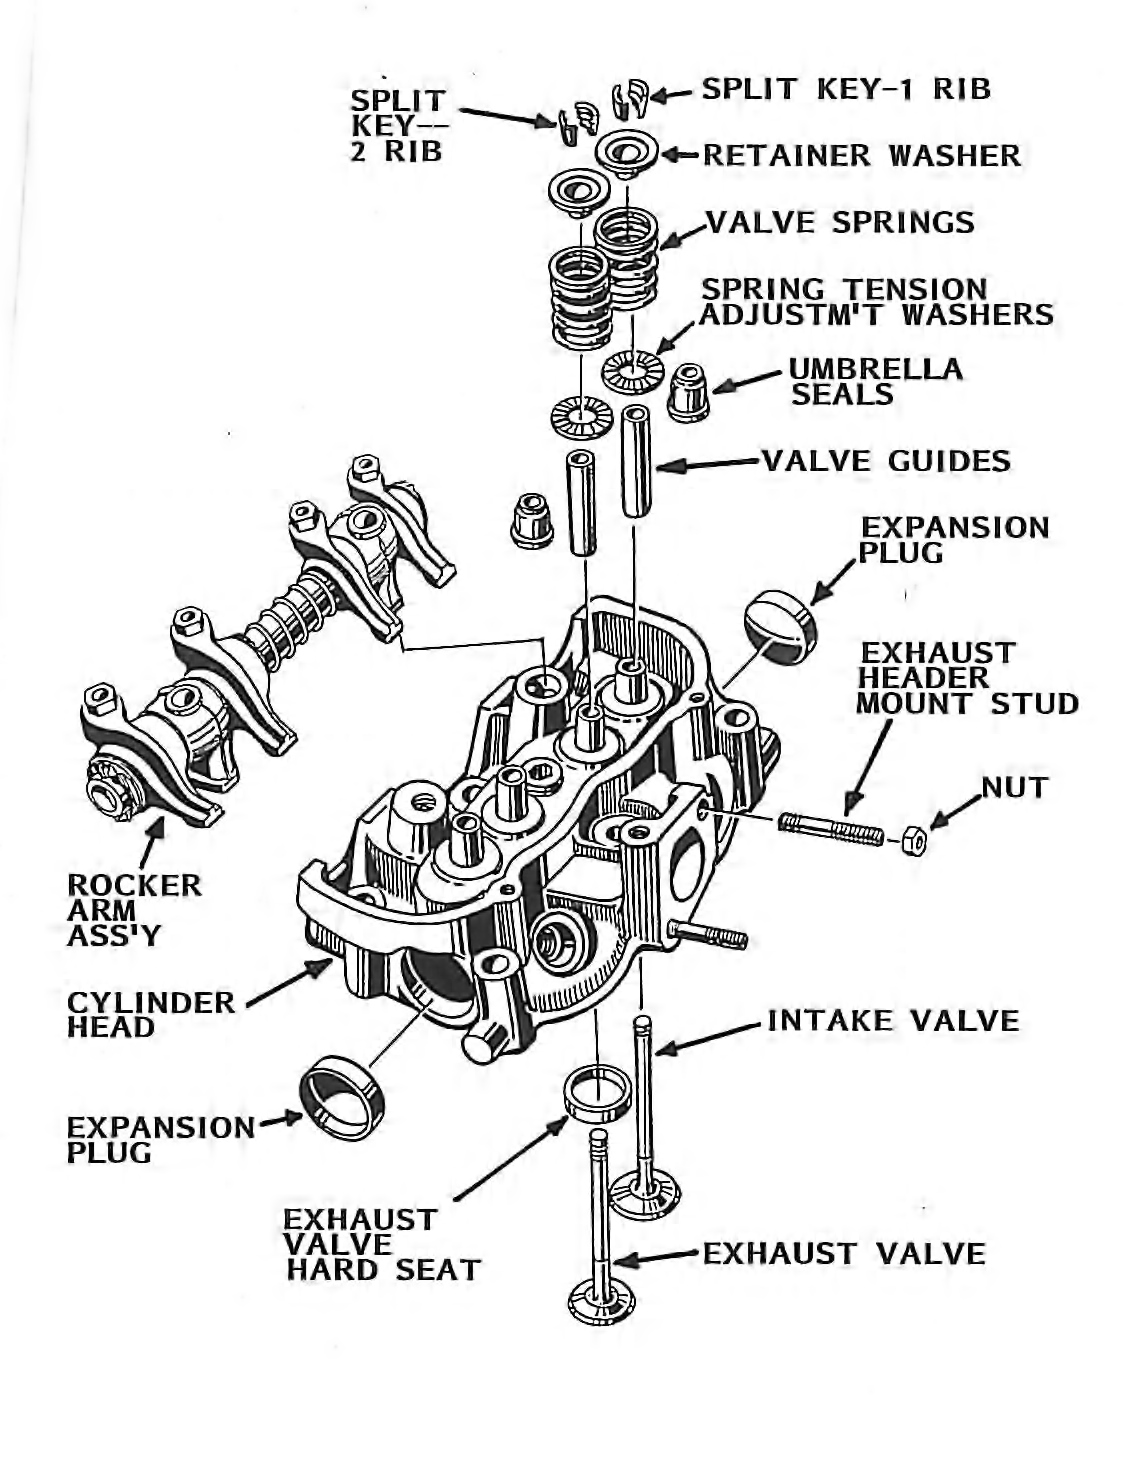 Saab Journal Saab V4 Cylinder Head Problems